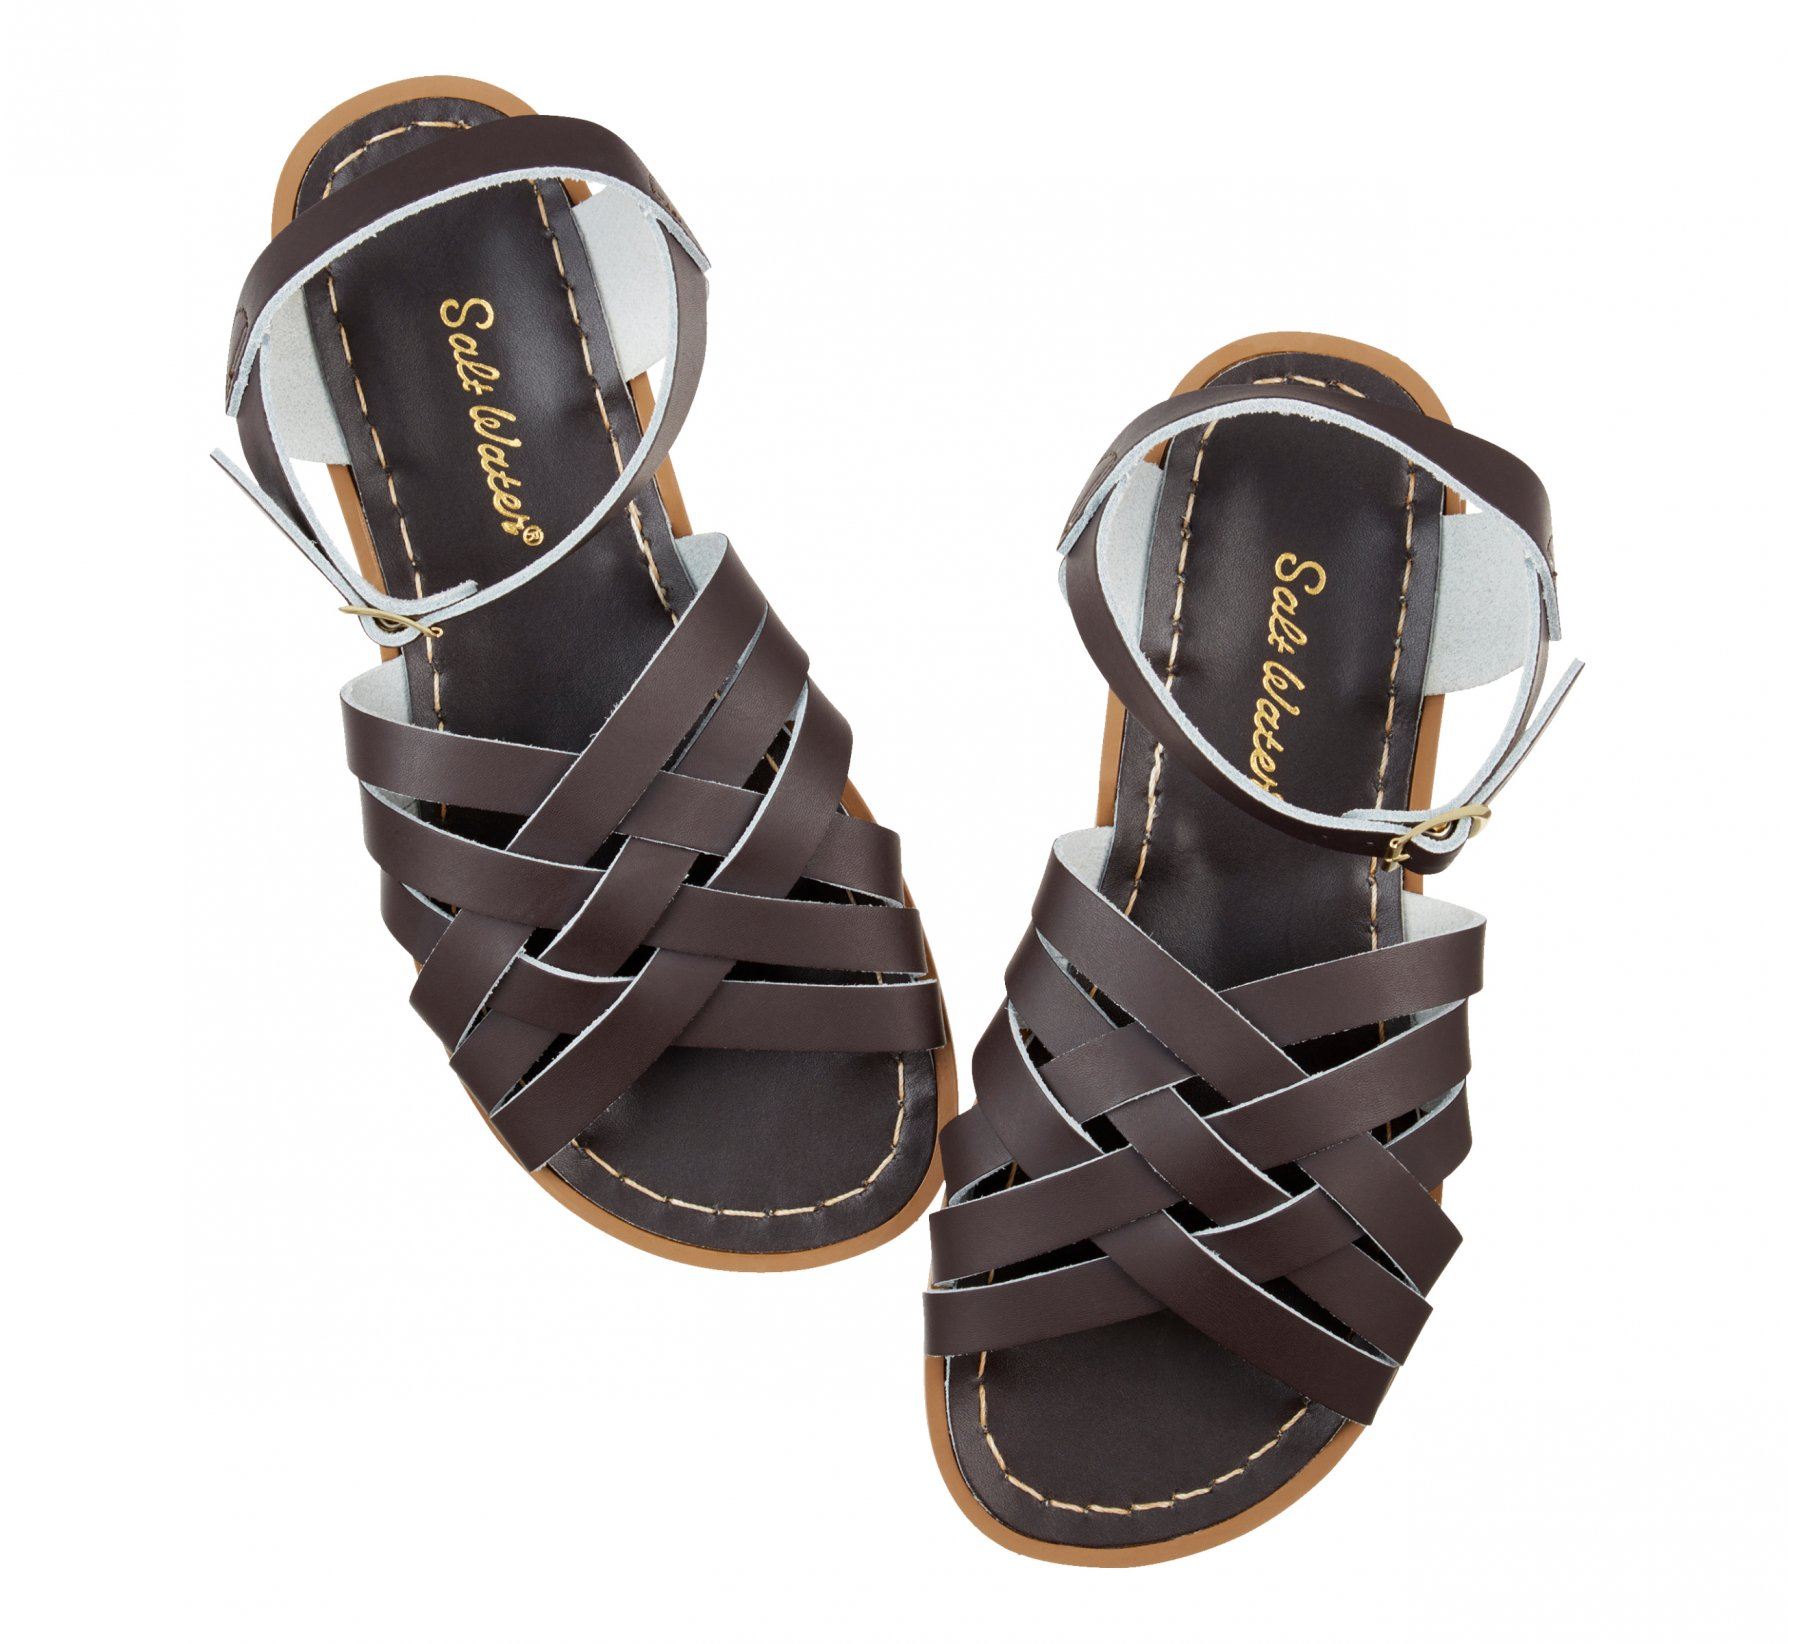 Retro Brown - Salt Water Sandals